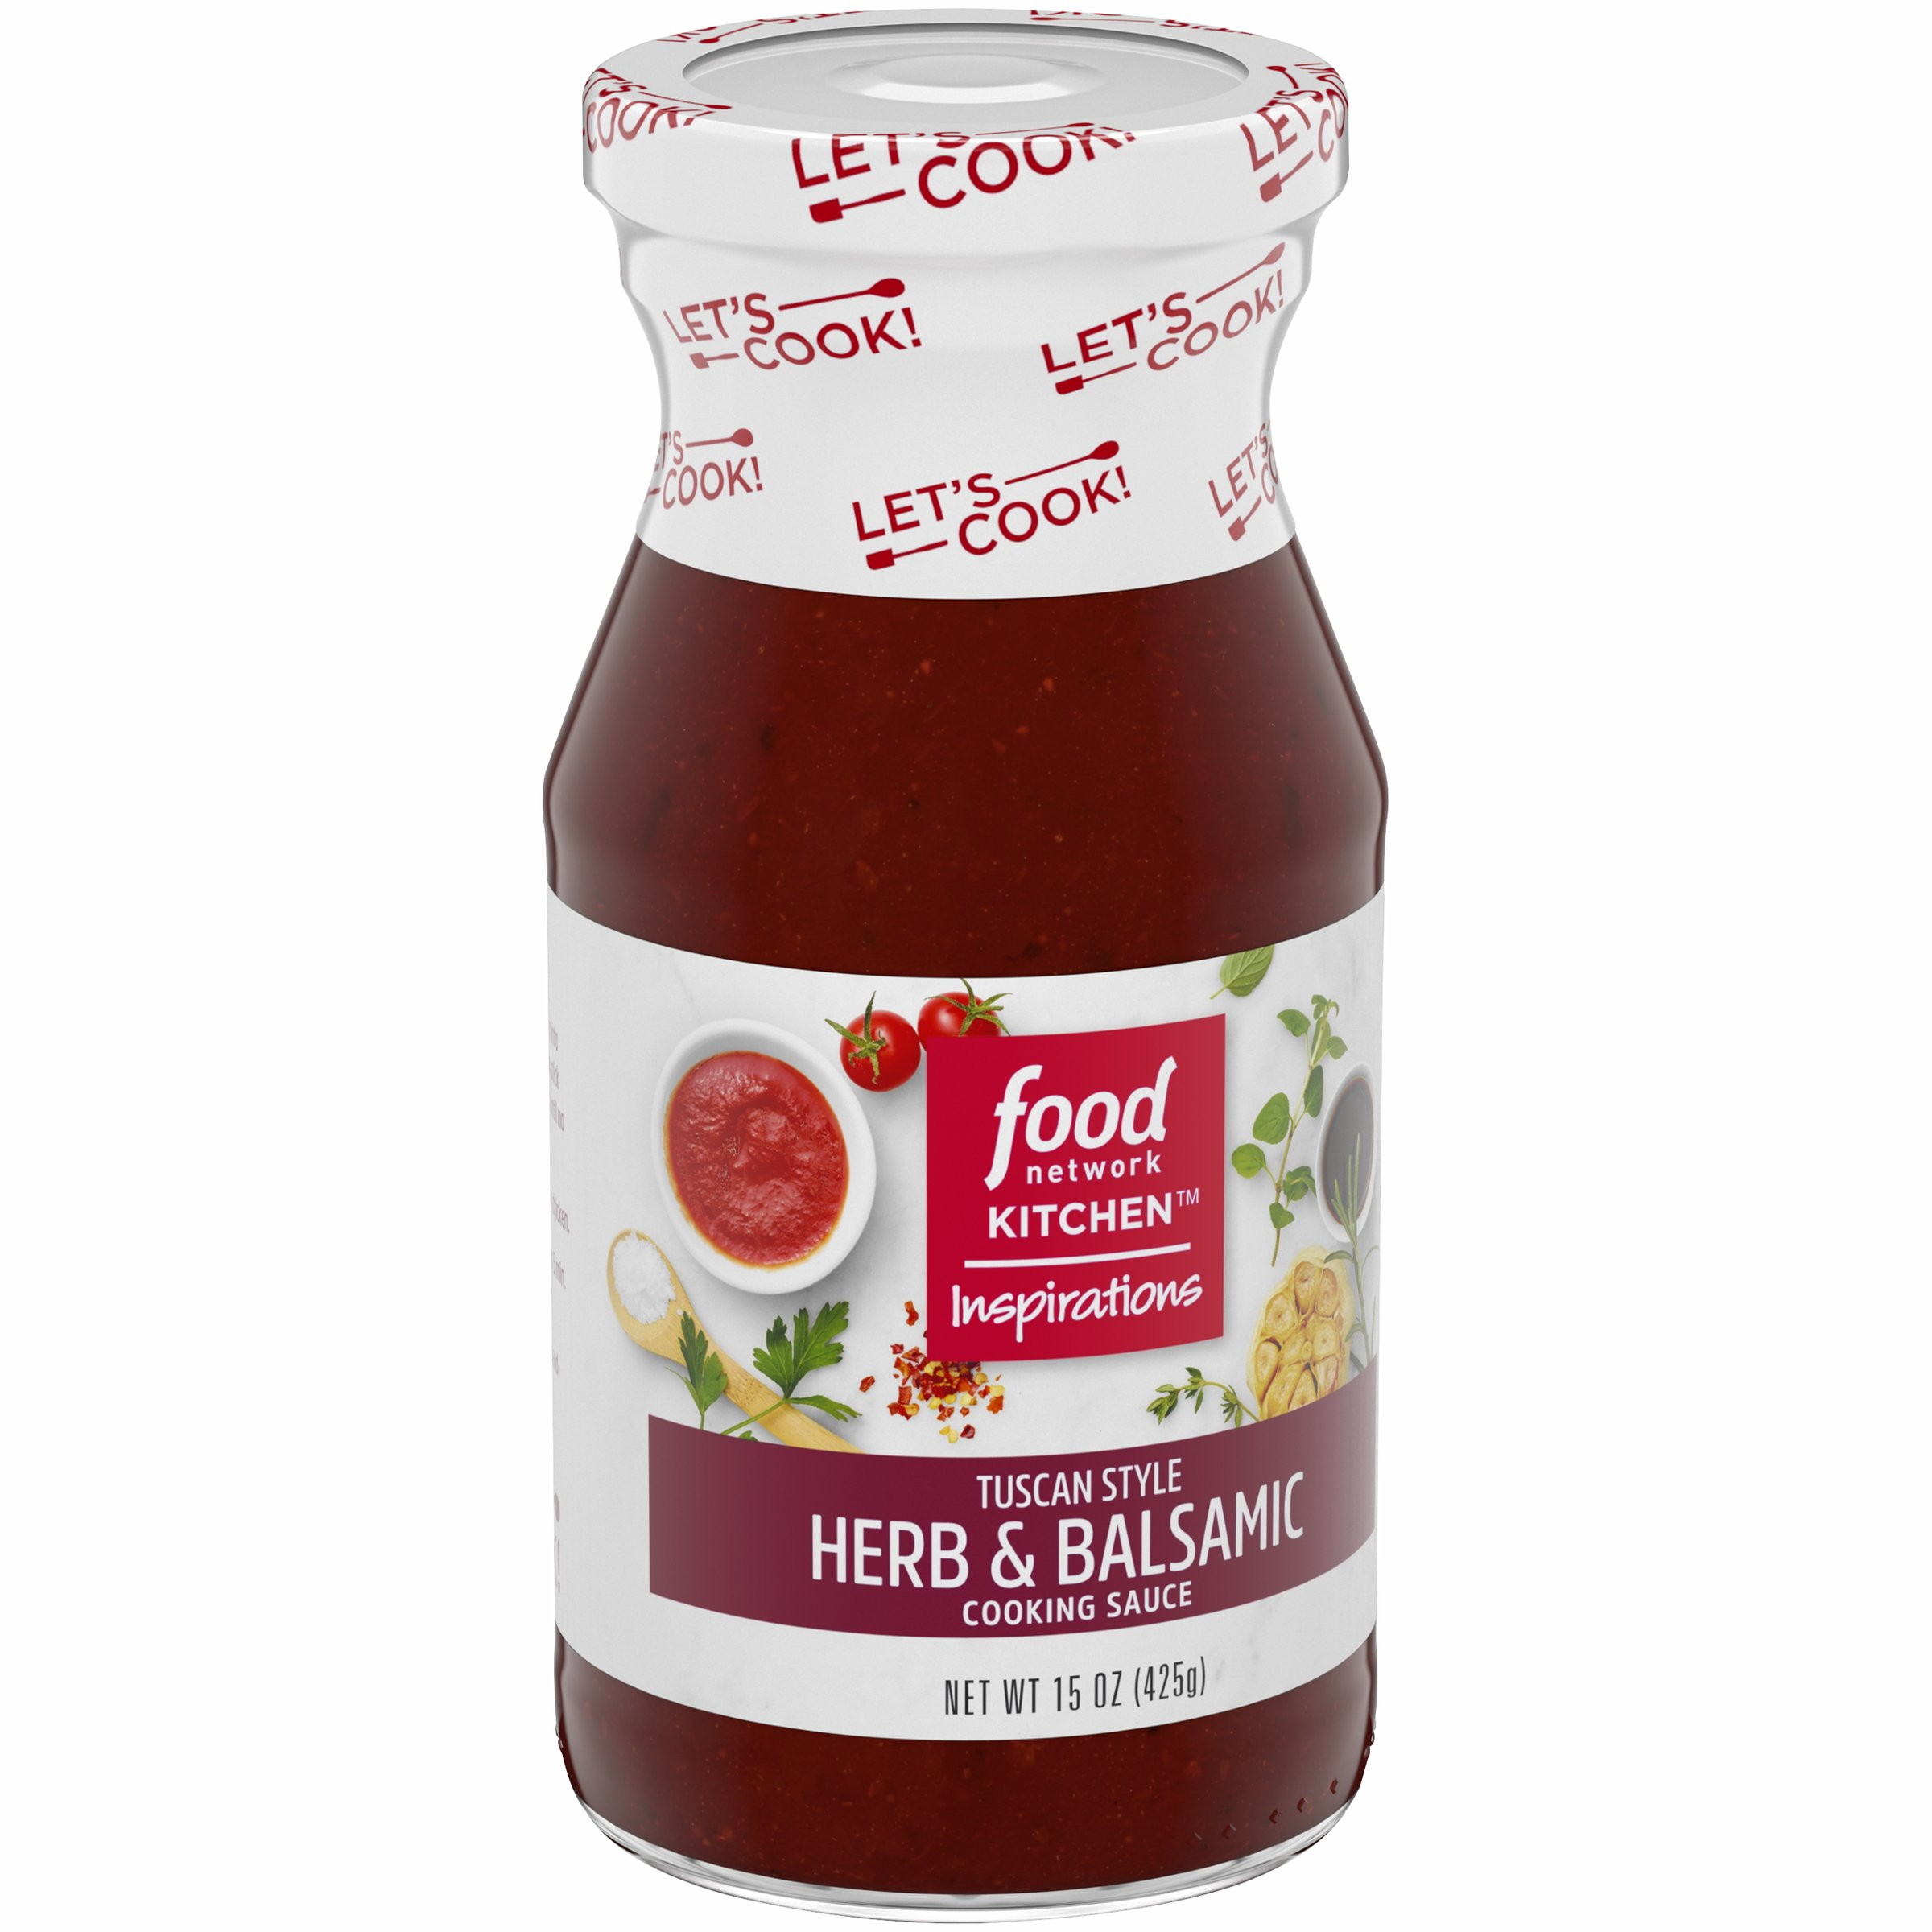 Food Network Kitchen Inspirations Tuscan Style Herb & Balsamic Cooking Sauce, 15 oz